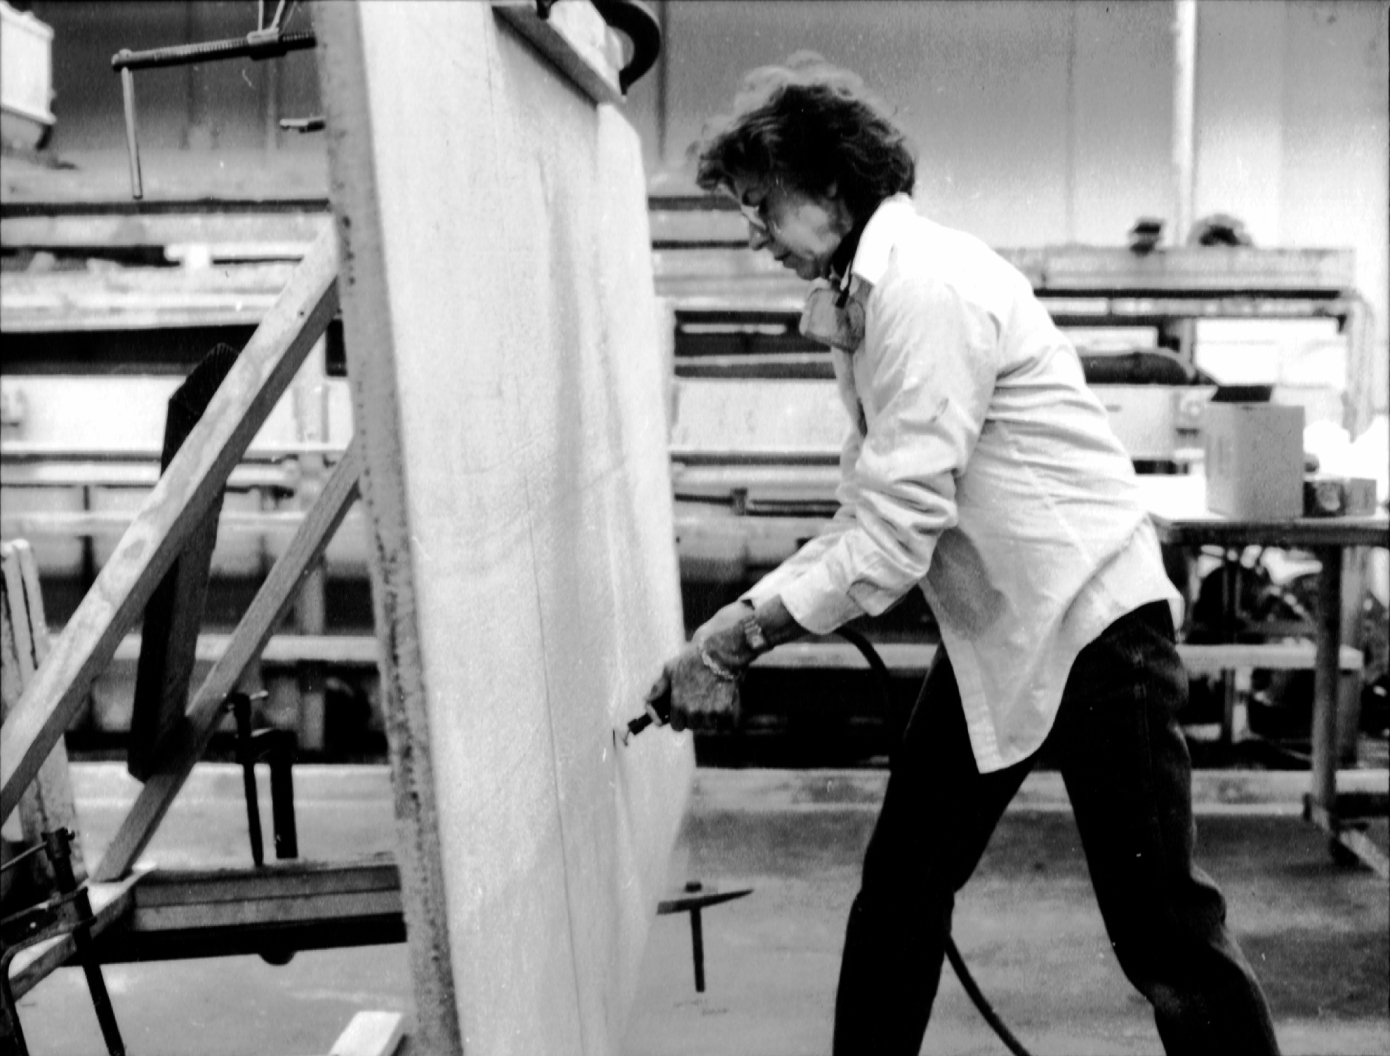 Frankenthaler making Sirroco at Mixografia in 1986